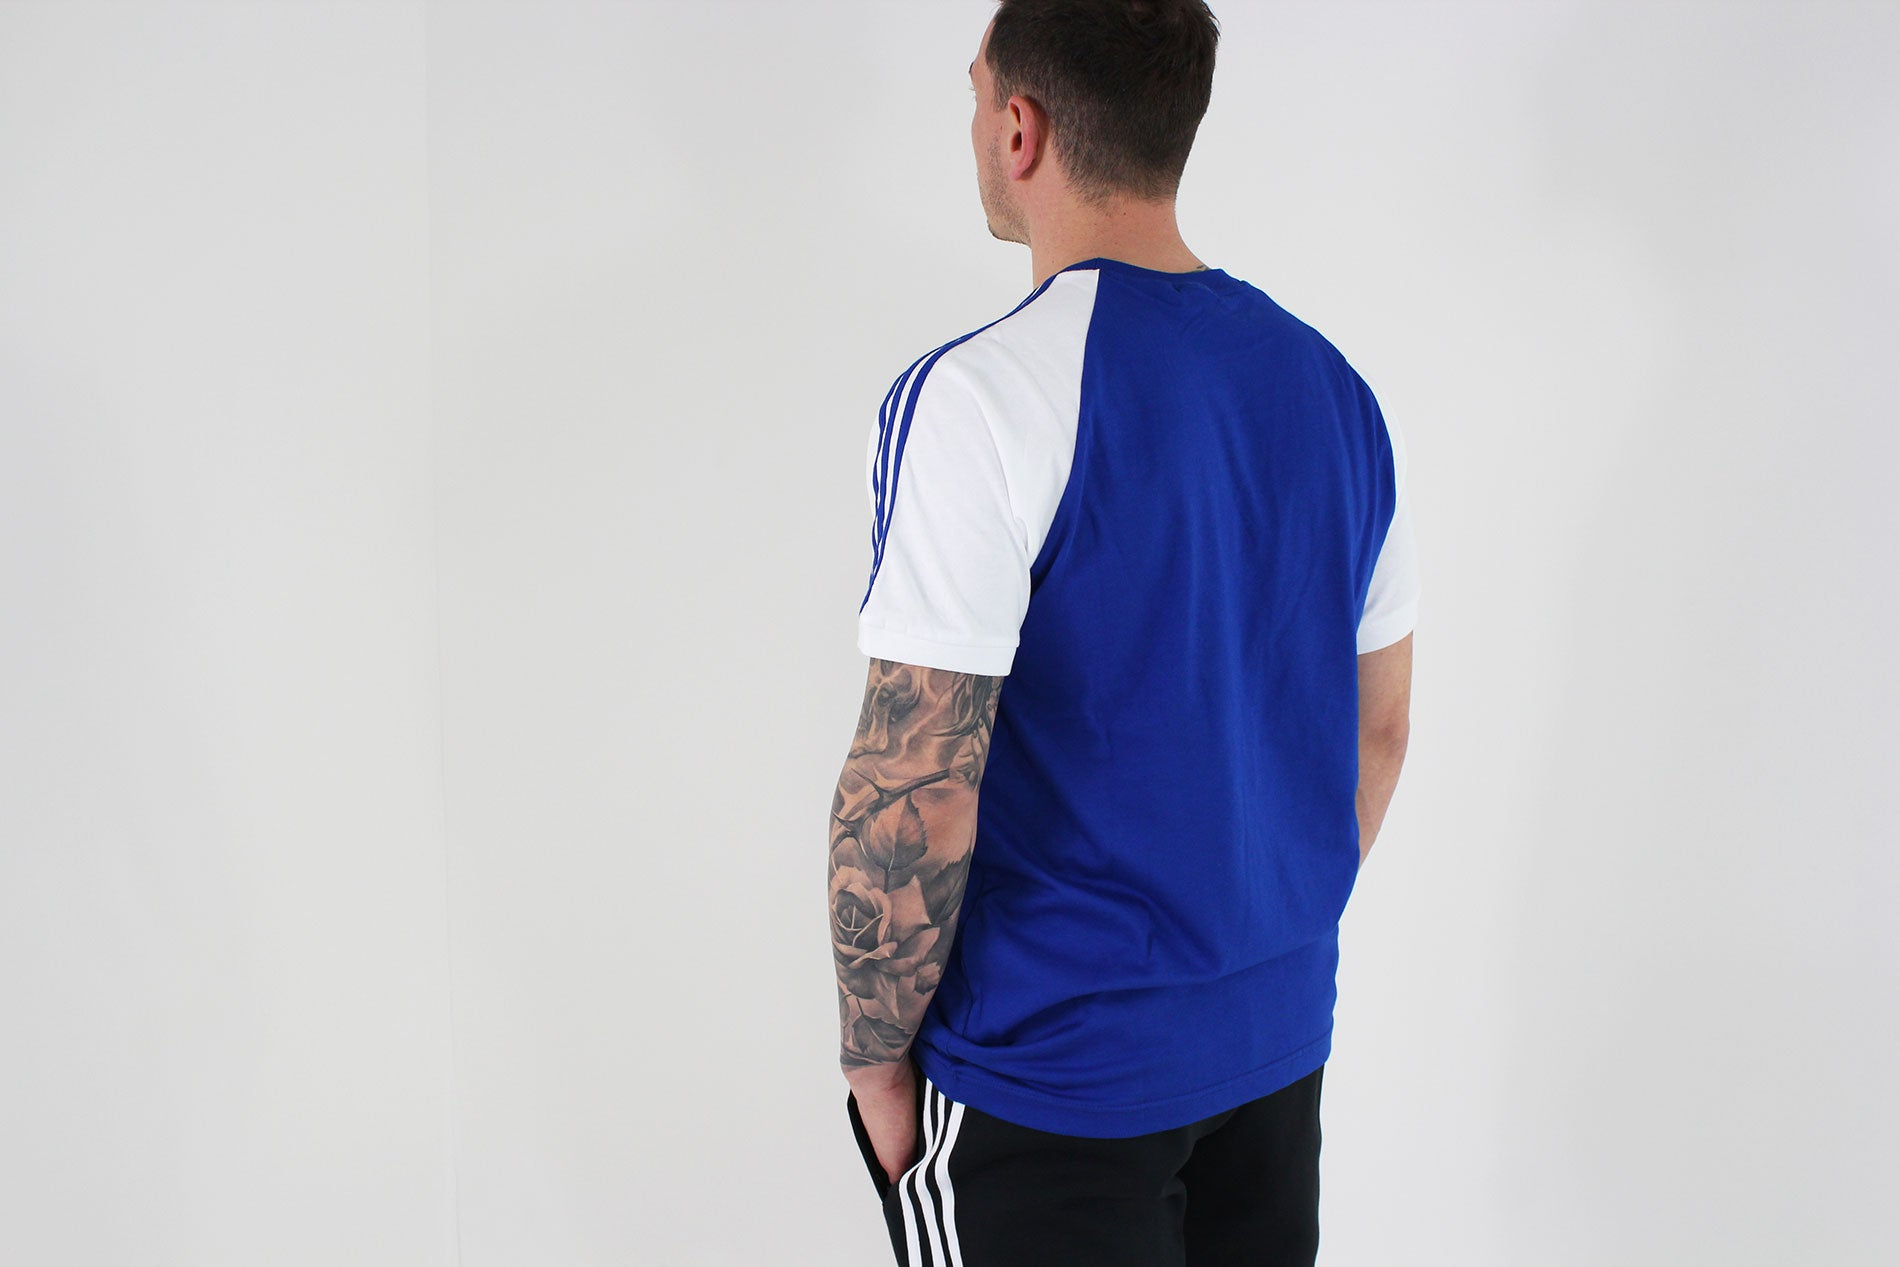 Adidas - T -Shirt 3 Stripes Short Sleeve (Collegiate Royal) CW1205